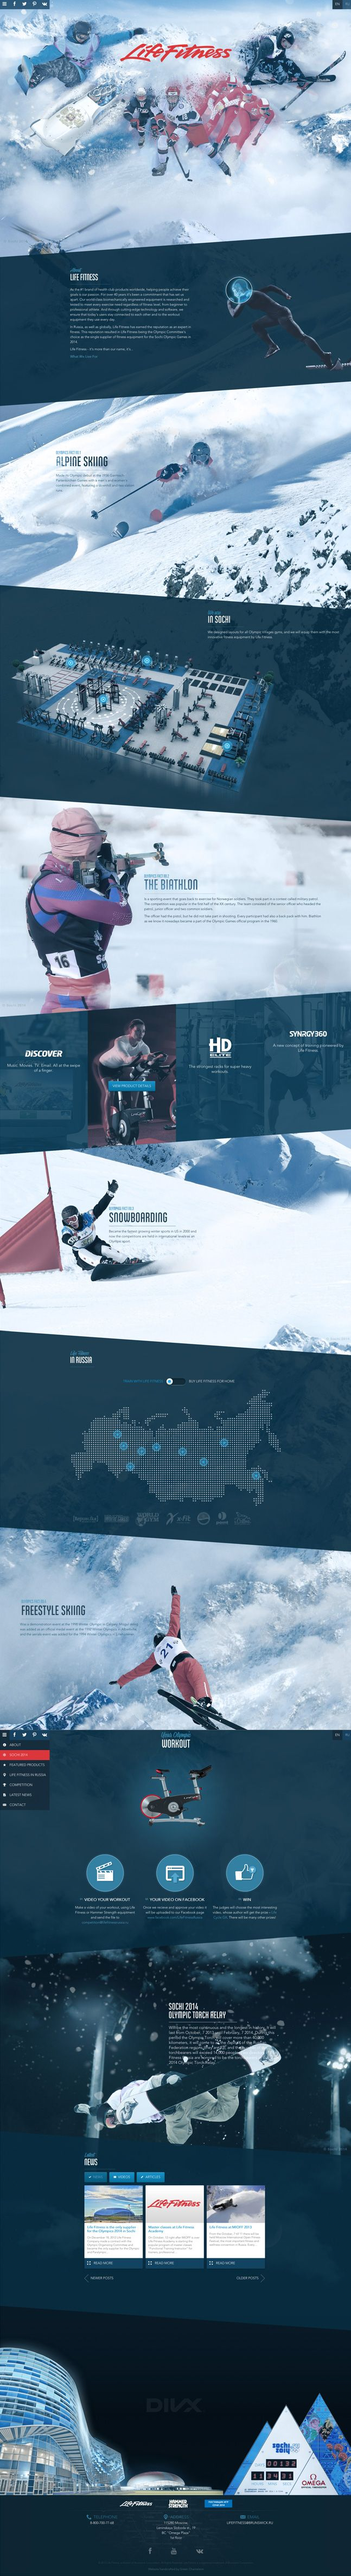 Winner 27 September 2013 Life Fitness at Sochi 2014 by Green Chameleon http://www.cssdesignawards.com/css-web-design-award-winner.php?id=23017 A one page promotional website for Life Fitness and their involvement at Sochi 2014 | #webdesign #it #web